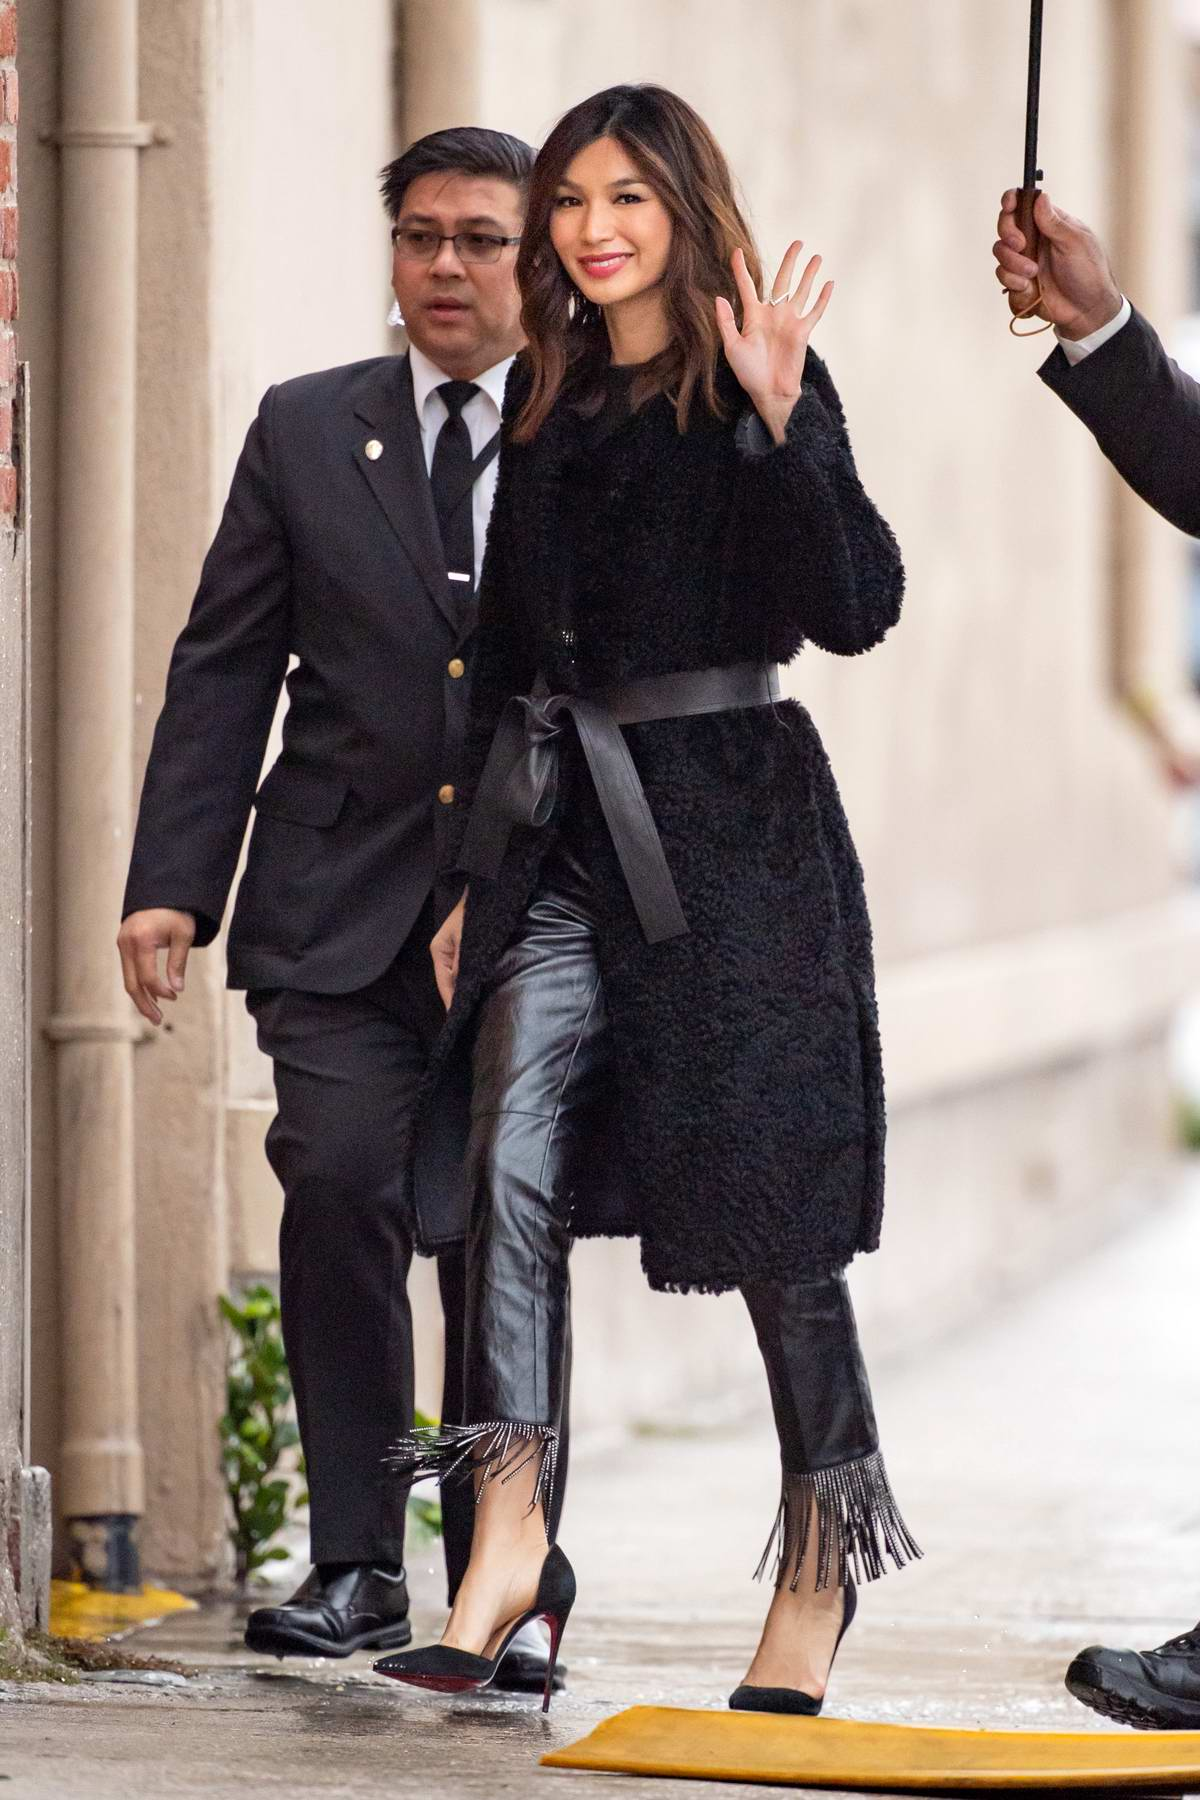 Gemma Chan arrives for her appearance on 'Jimmy Kimmel Live' in Los Angeles